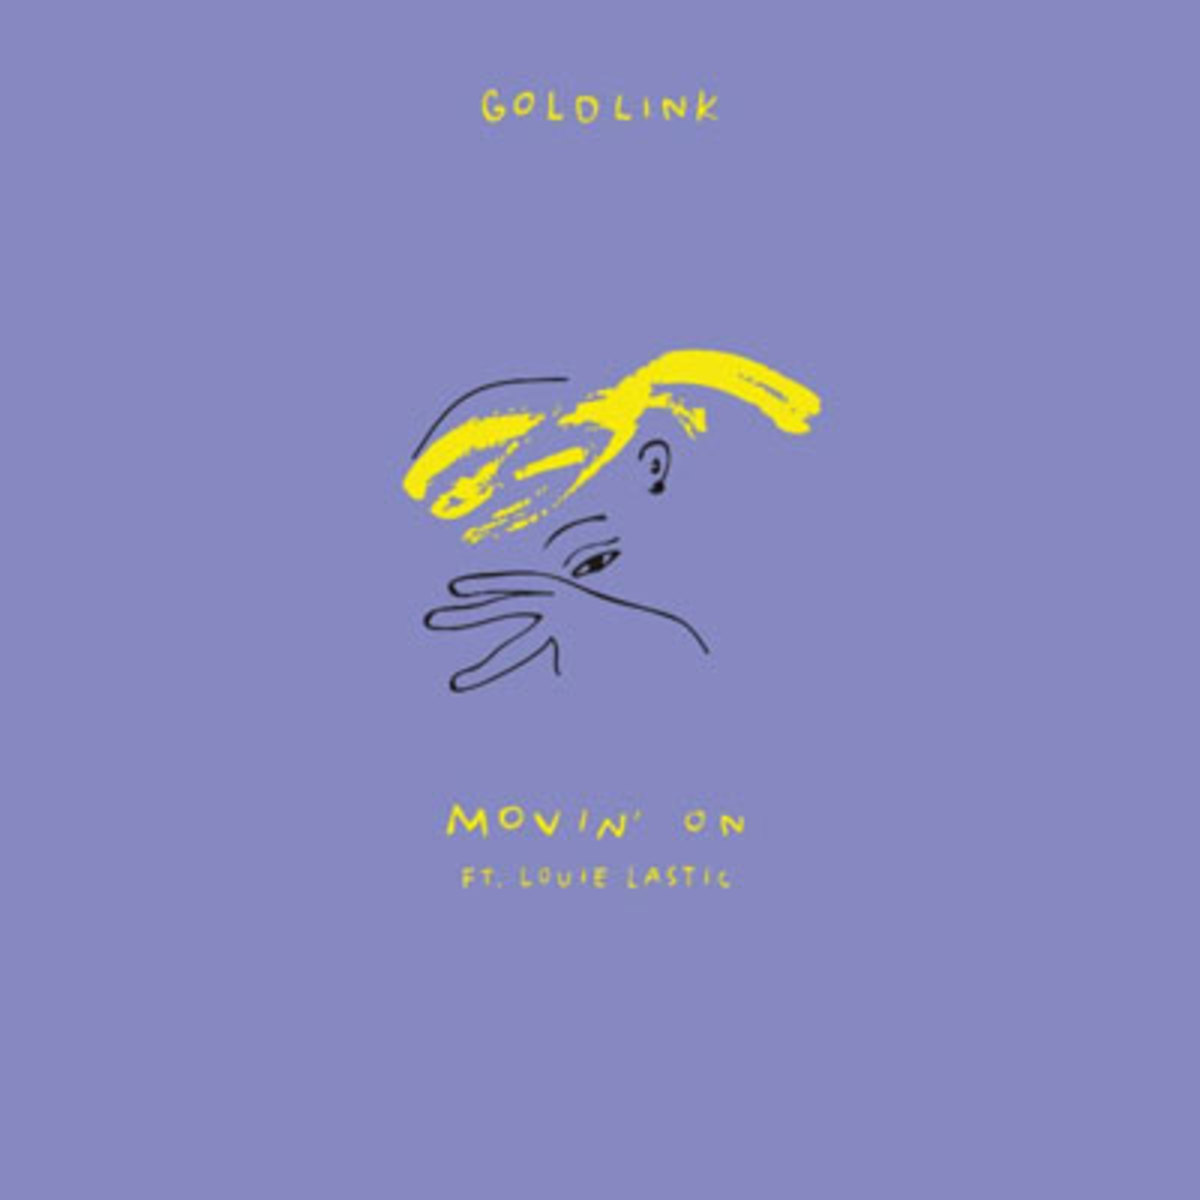 goldlink-movin-on.jpg